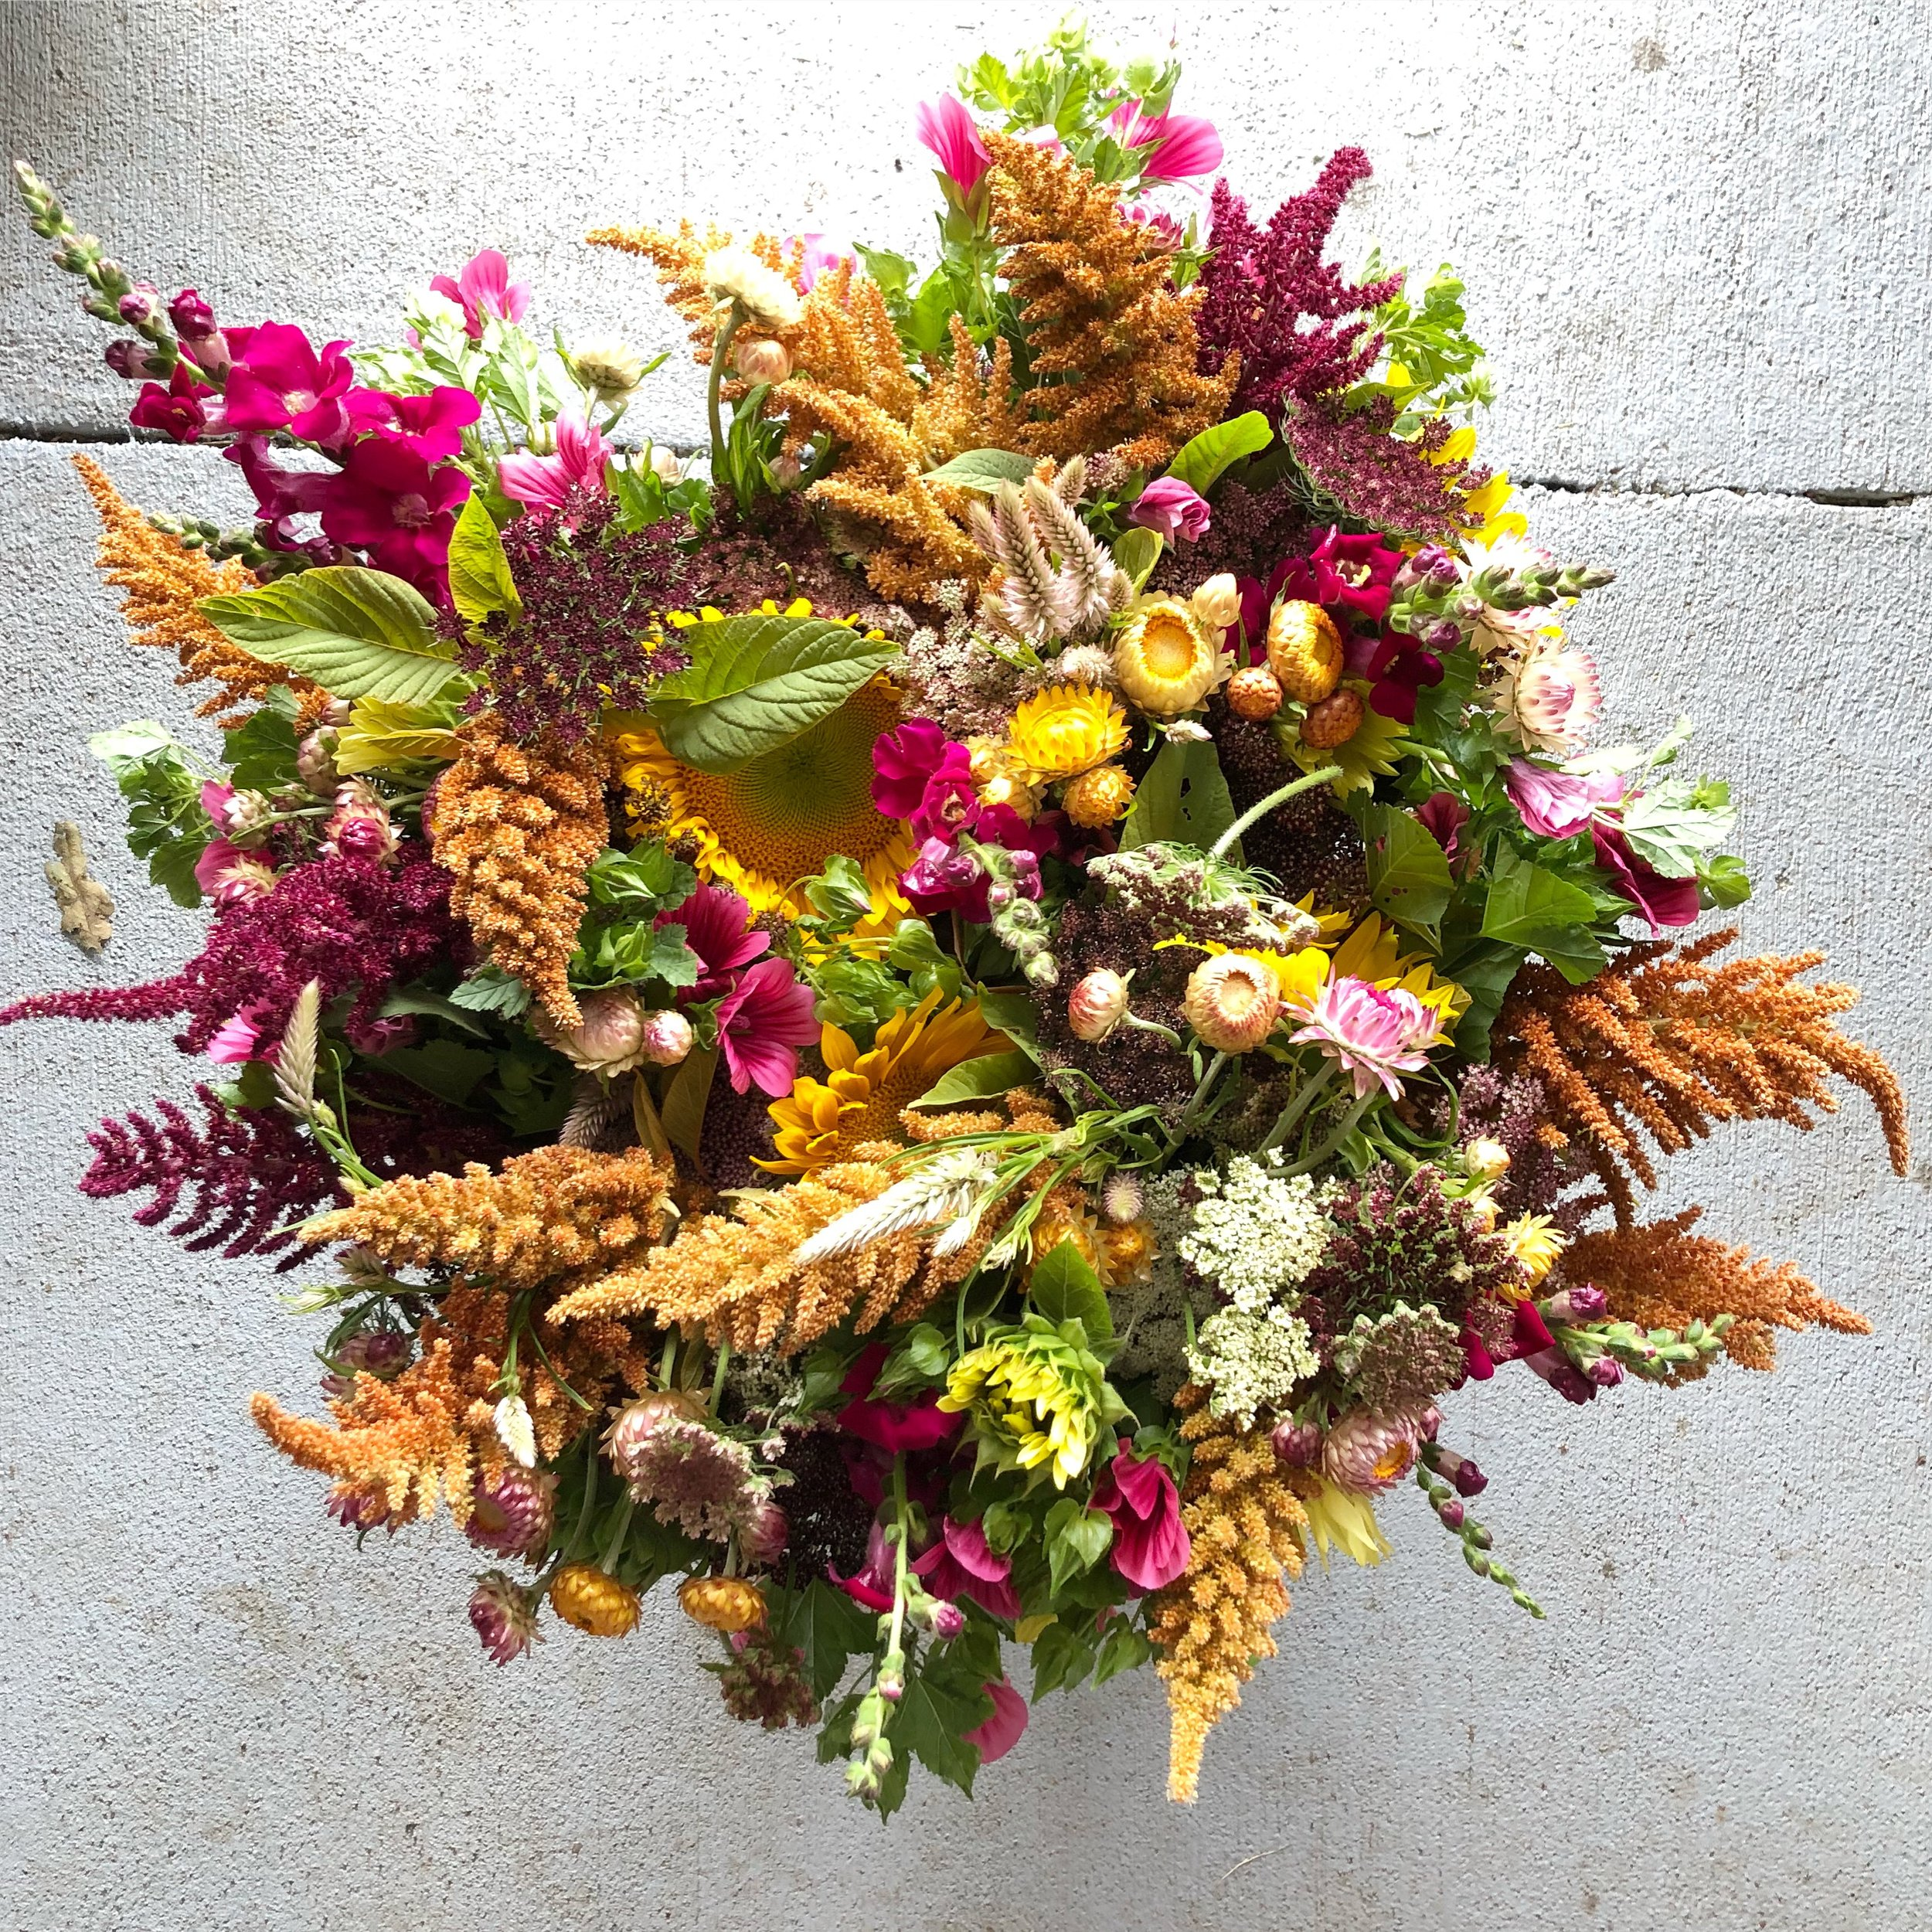 Bouquet Subscriptions - We love sharing the beauty that grows on our farm, and a bouquet subscription is one of the best ways to bring fresh, seasonal blooms into your home or office. We are currently offering spring and summer bouquet subscriptions - Click Here for more information and to purchase.